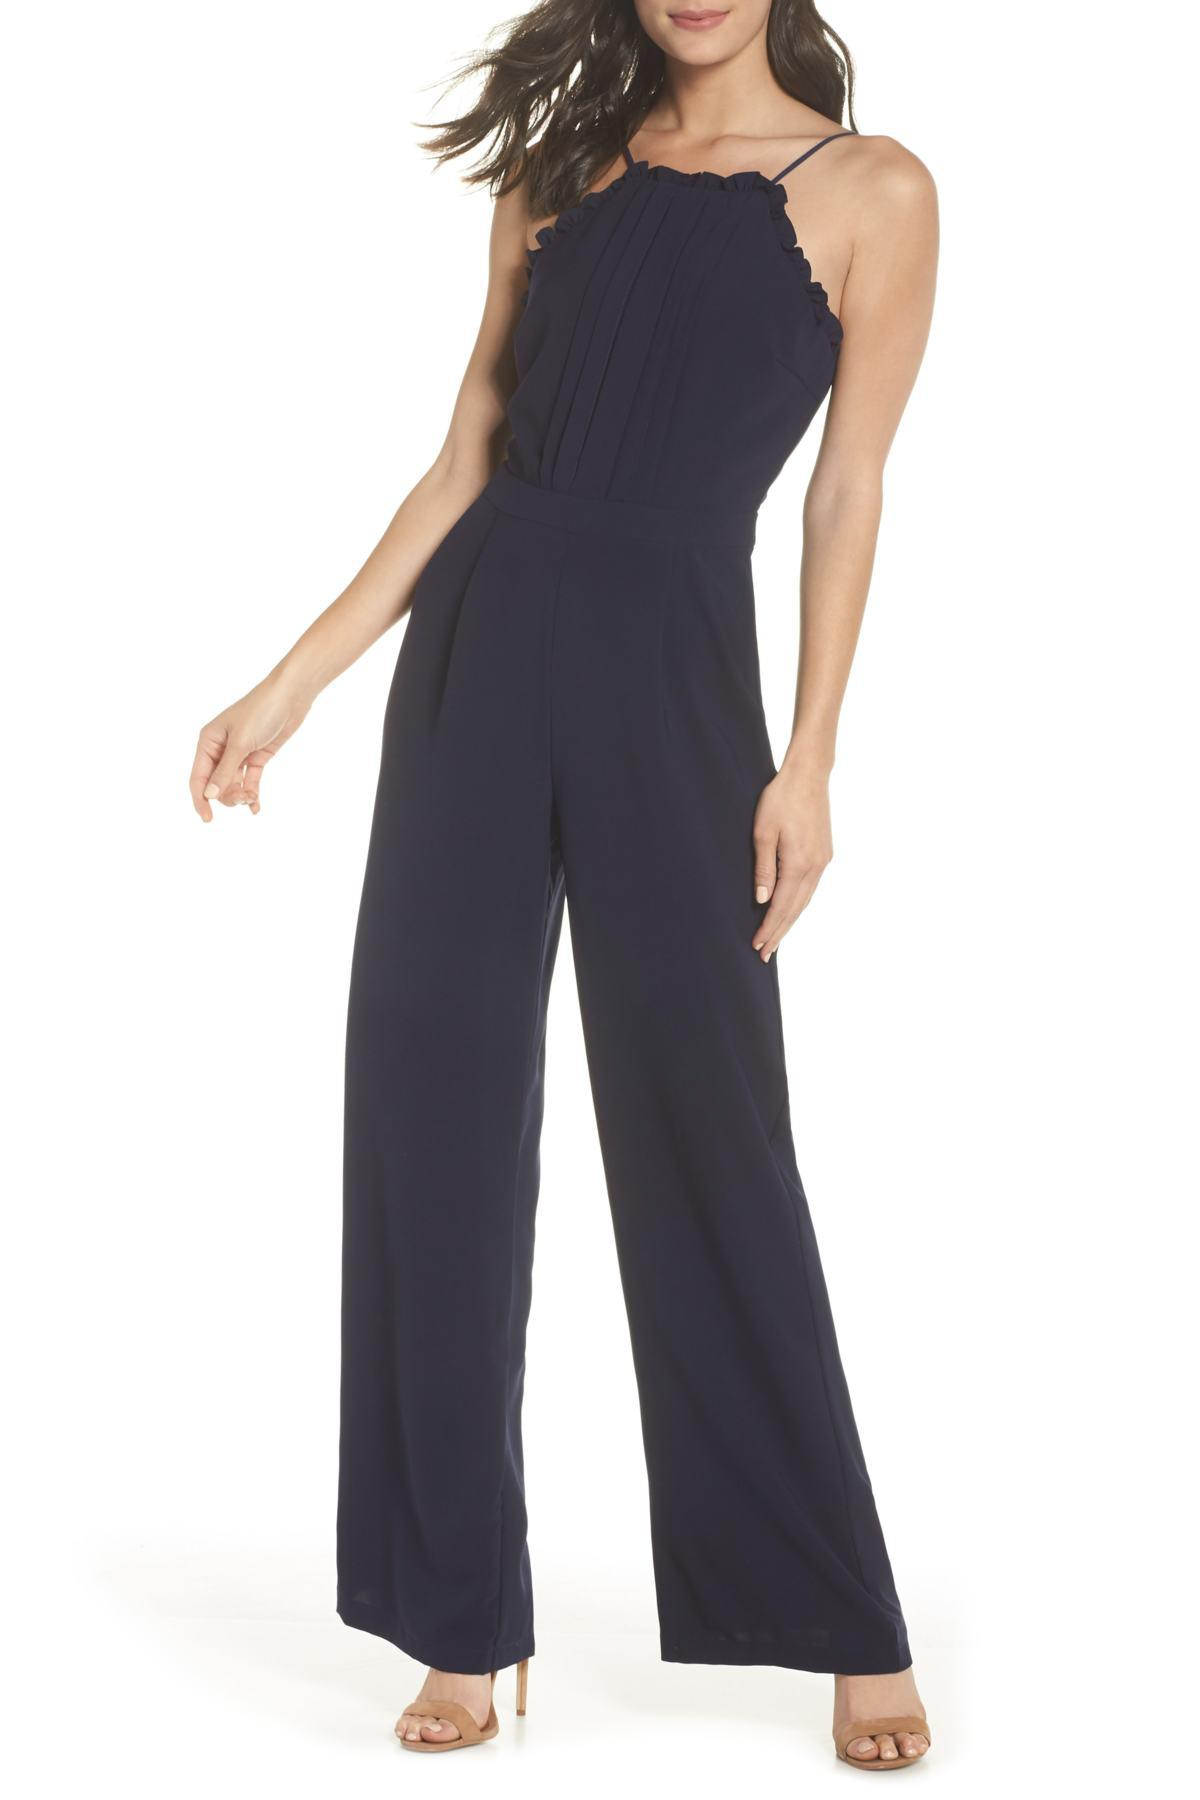 ea983f6dc87 Lyst - Adelyn Rae Apron Style Jumpsuit in Blue - Save 27%